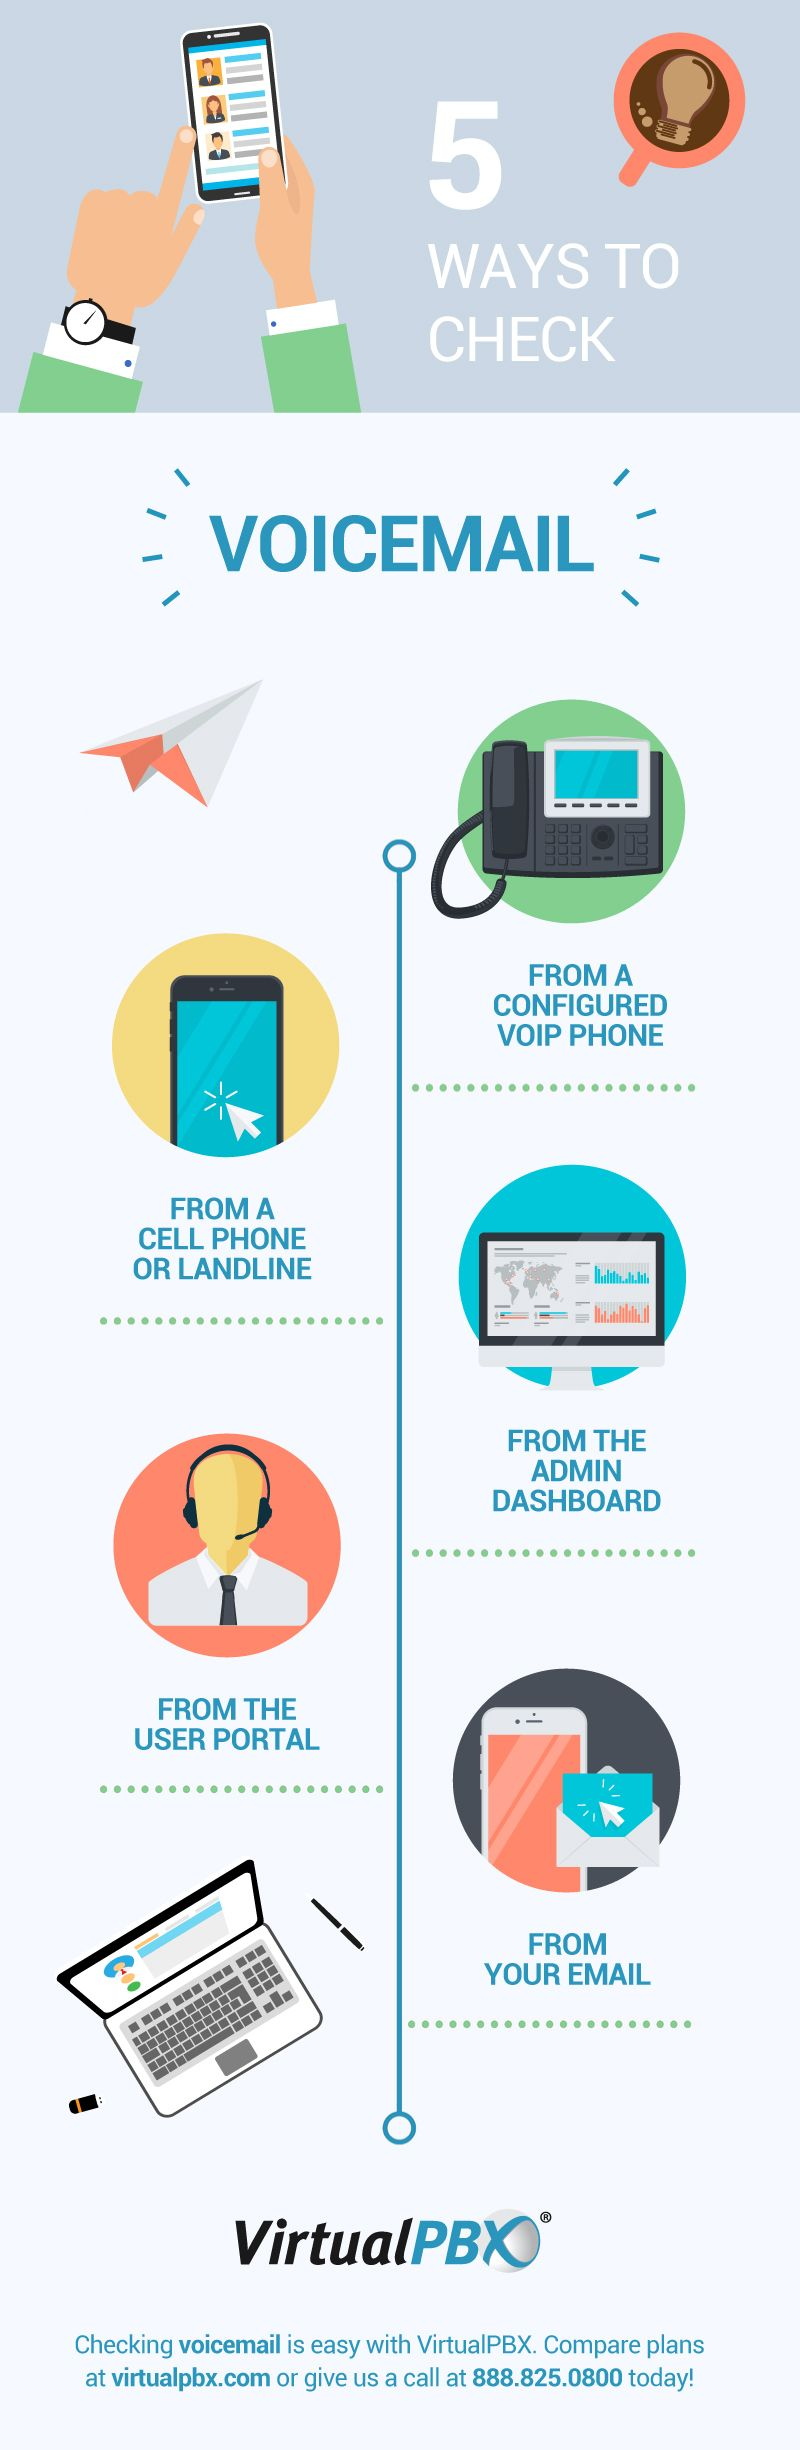 5 Ways How to Check Voicemail VirtualPBX Infographic